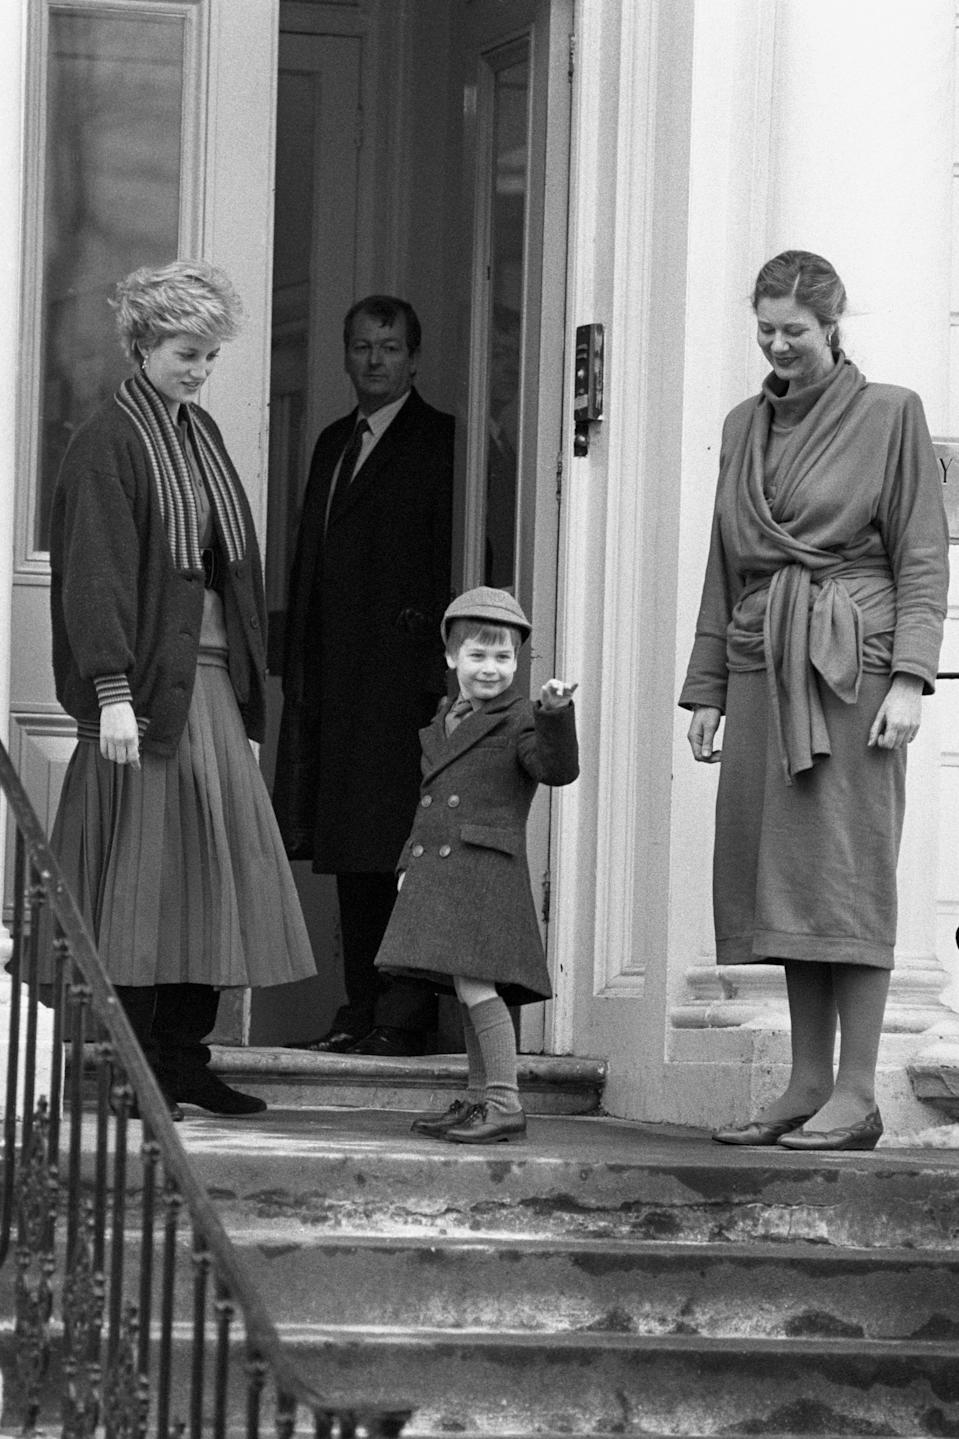 Prince William appeared fairly happy on his first day at big school, wearing the his double breasted school coat and a grey cap. His mother, the late Princess of Wales, dropped him off. <em>[Photo: PA]</em>